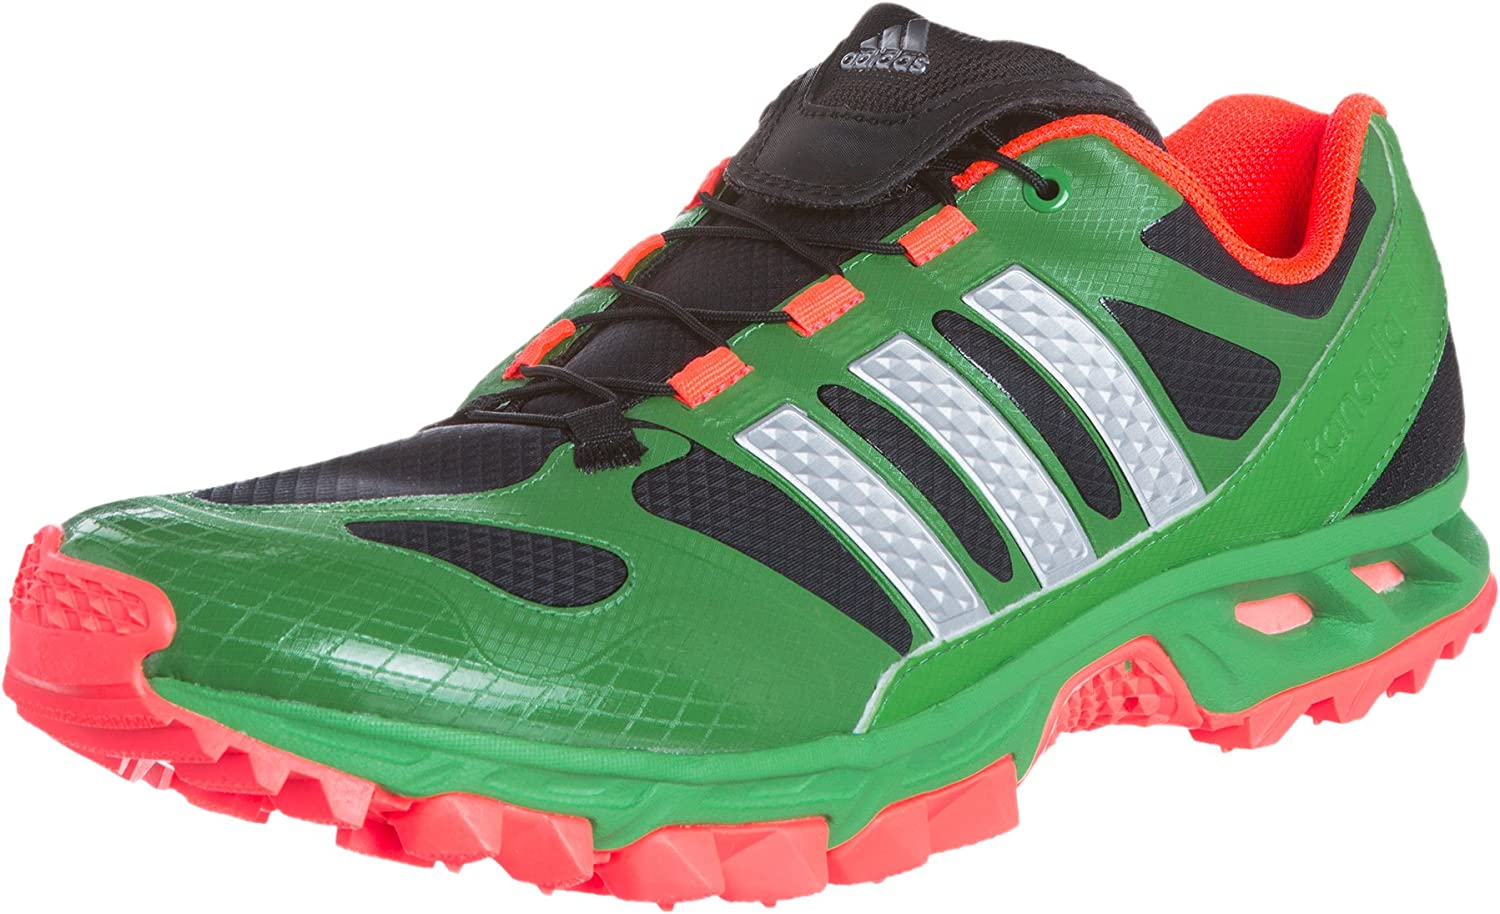 adidas Zapatillas Running Hombre Kanadia Elite TR M black1/metsi, Color, Talla 8.5: Amazon.es: Zapatos y complementos